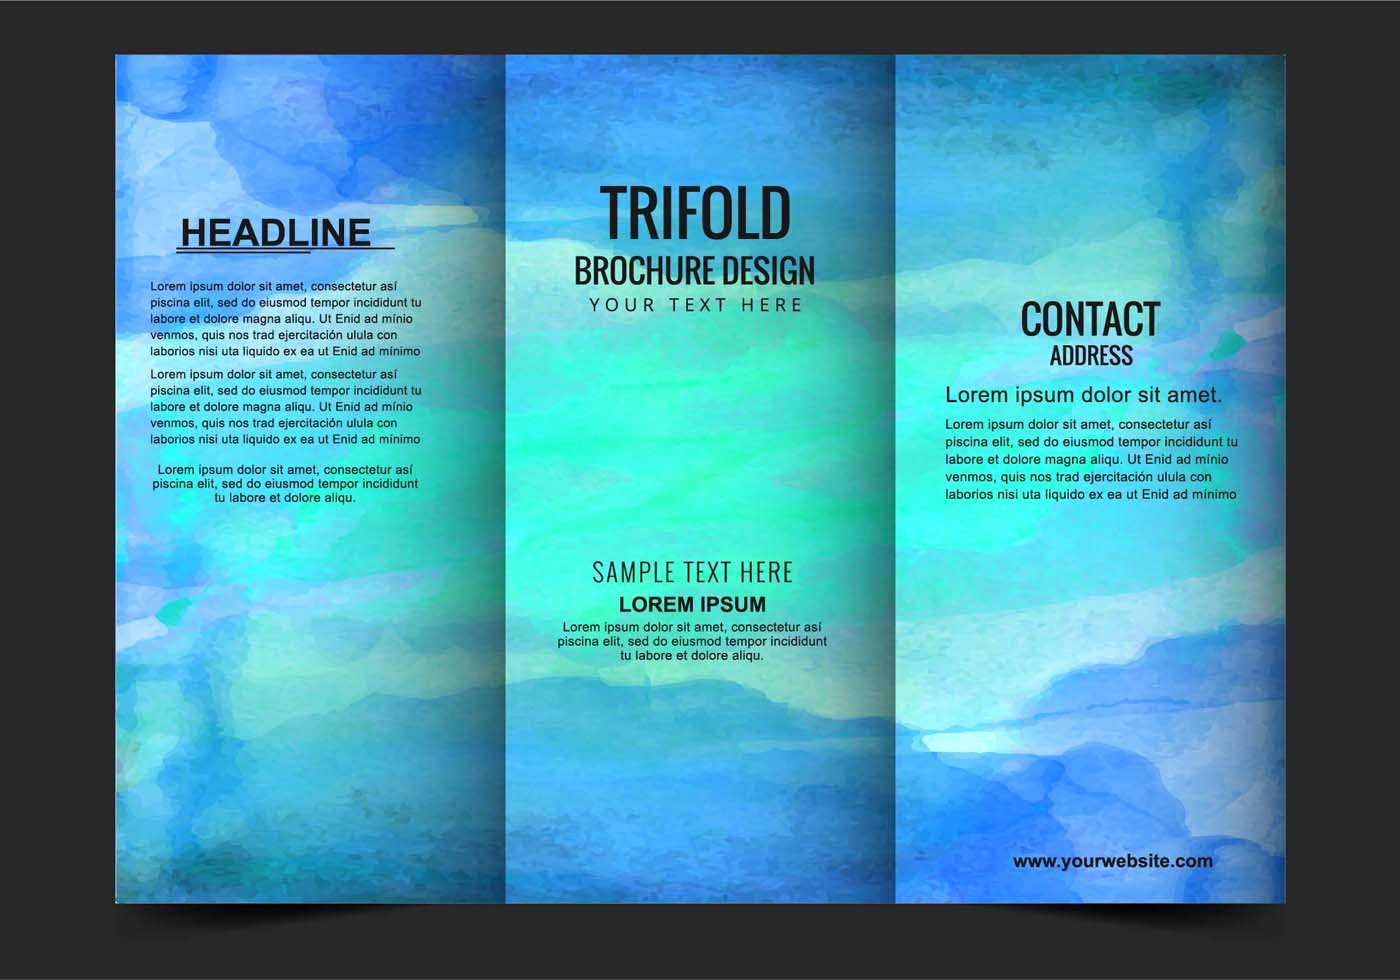 Free Tri Fold Template Awesome Vector Modern Trifold Brochure Template Download Free